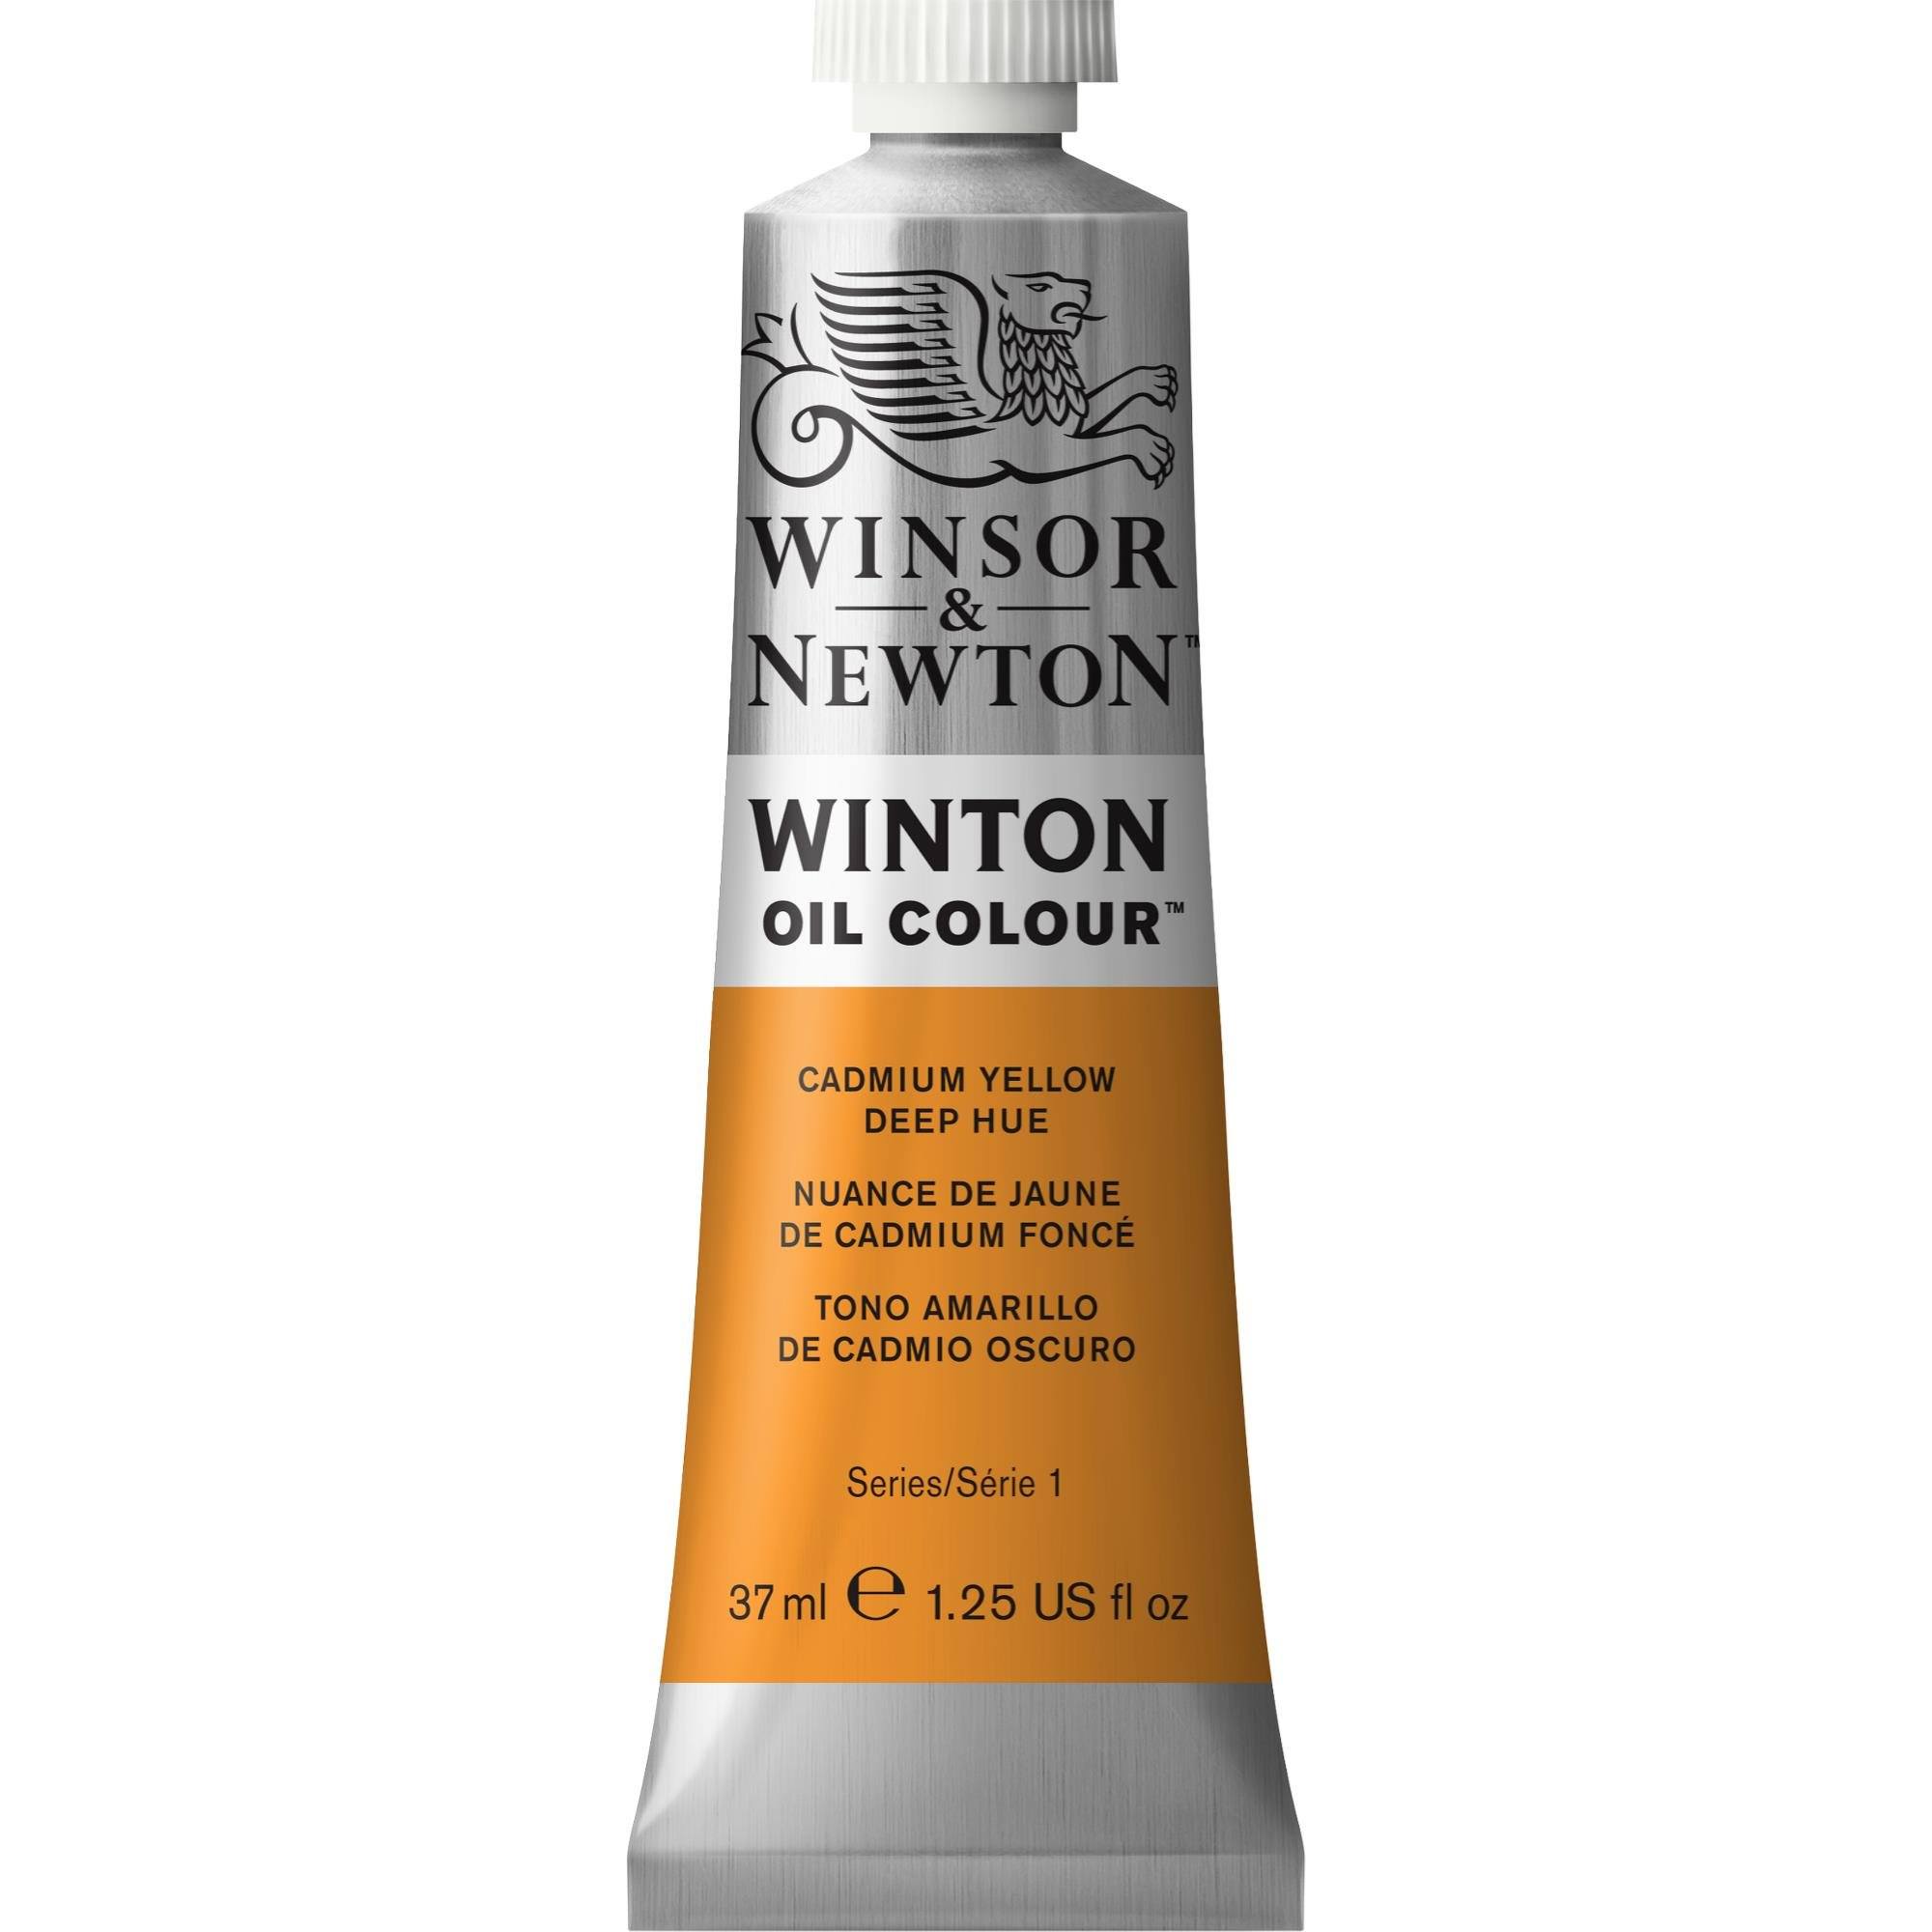 Winsor & Newton Winton Oil Colour Paint, 37ml tube, Cadmium Yellow Deep Hue